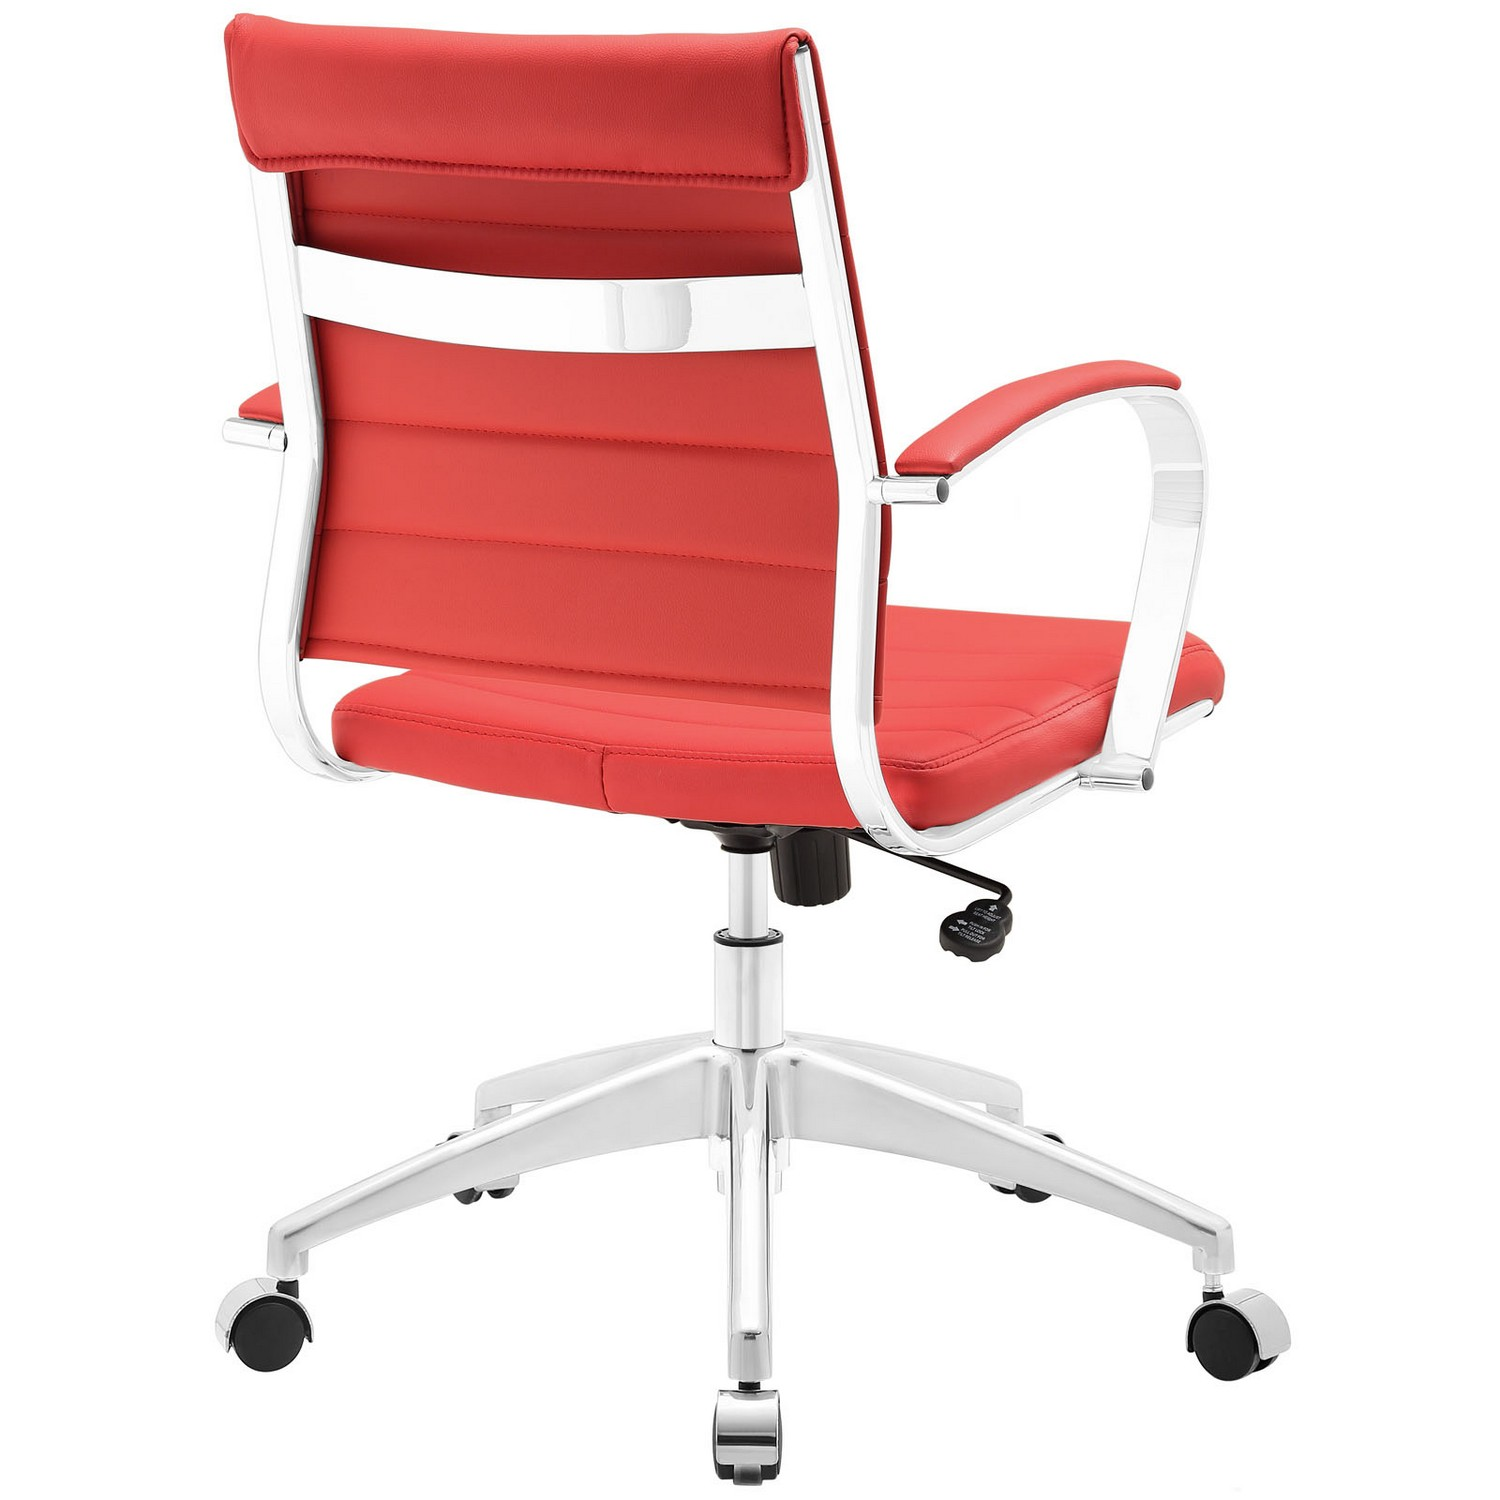 Modway Jive Mid Back Office Chair - Red